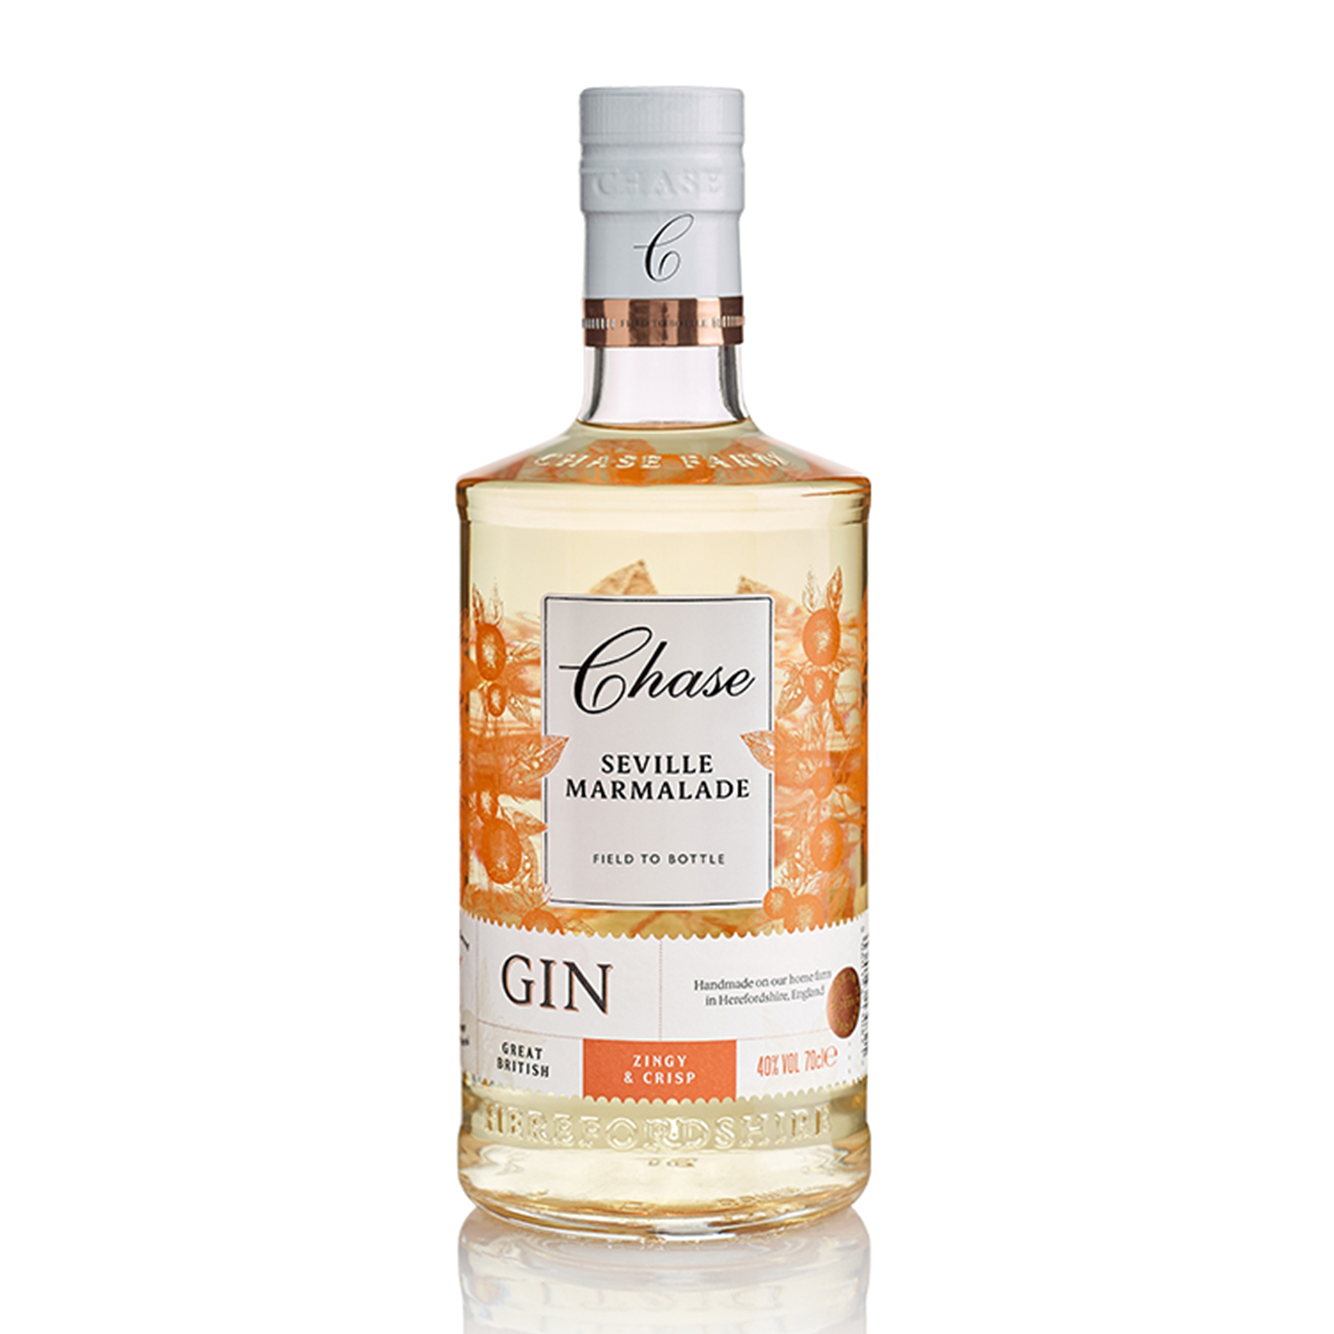 William Chase Seville Marmalade Gin